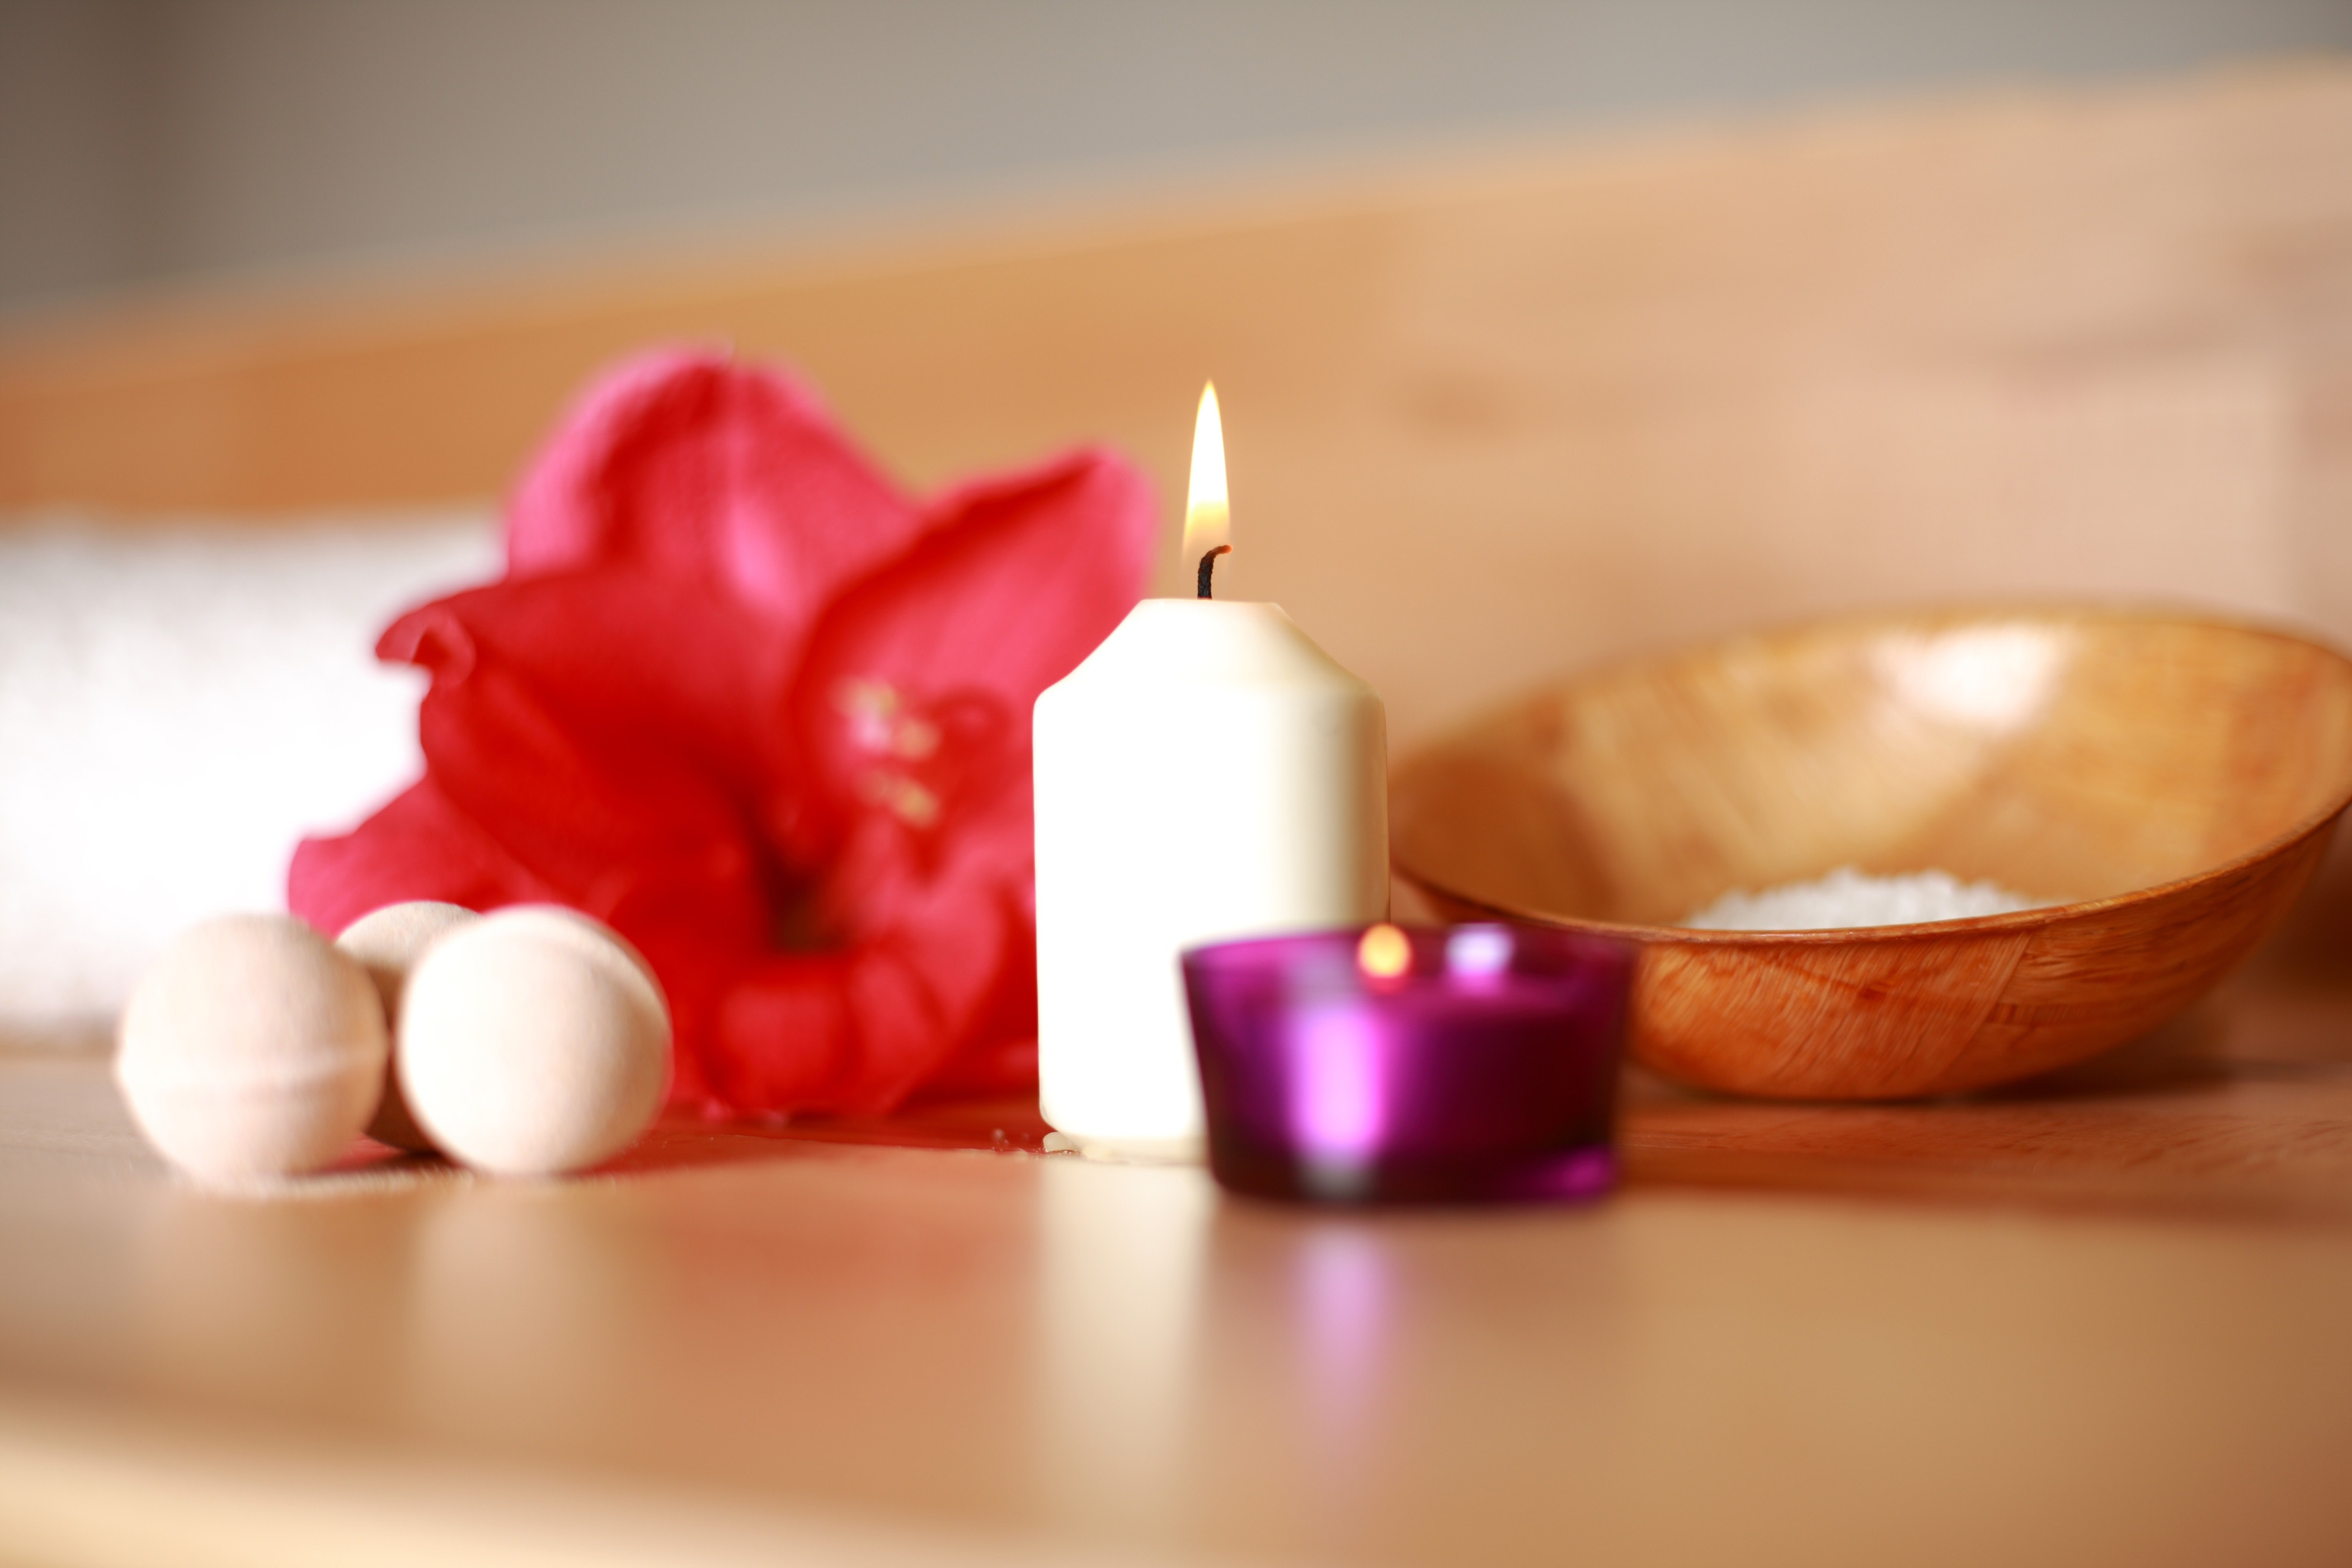 Massage accessories, flower and candle for an authentic, relaxing massage session